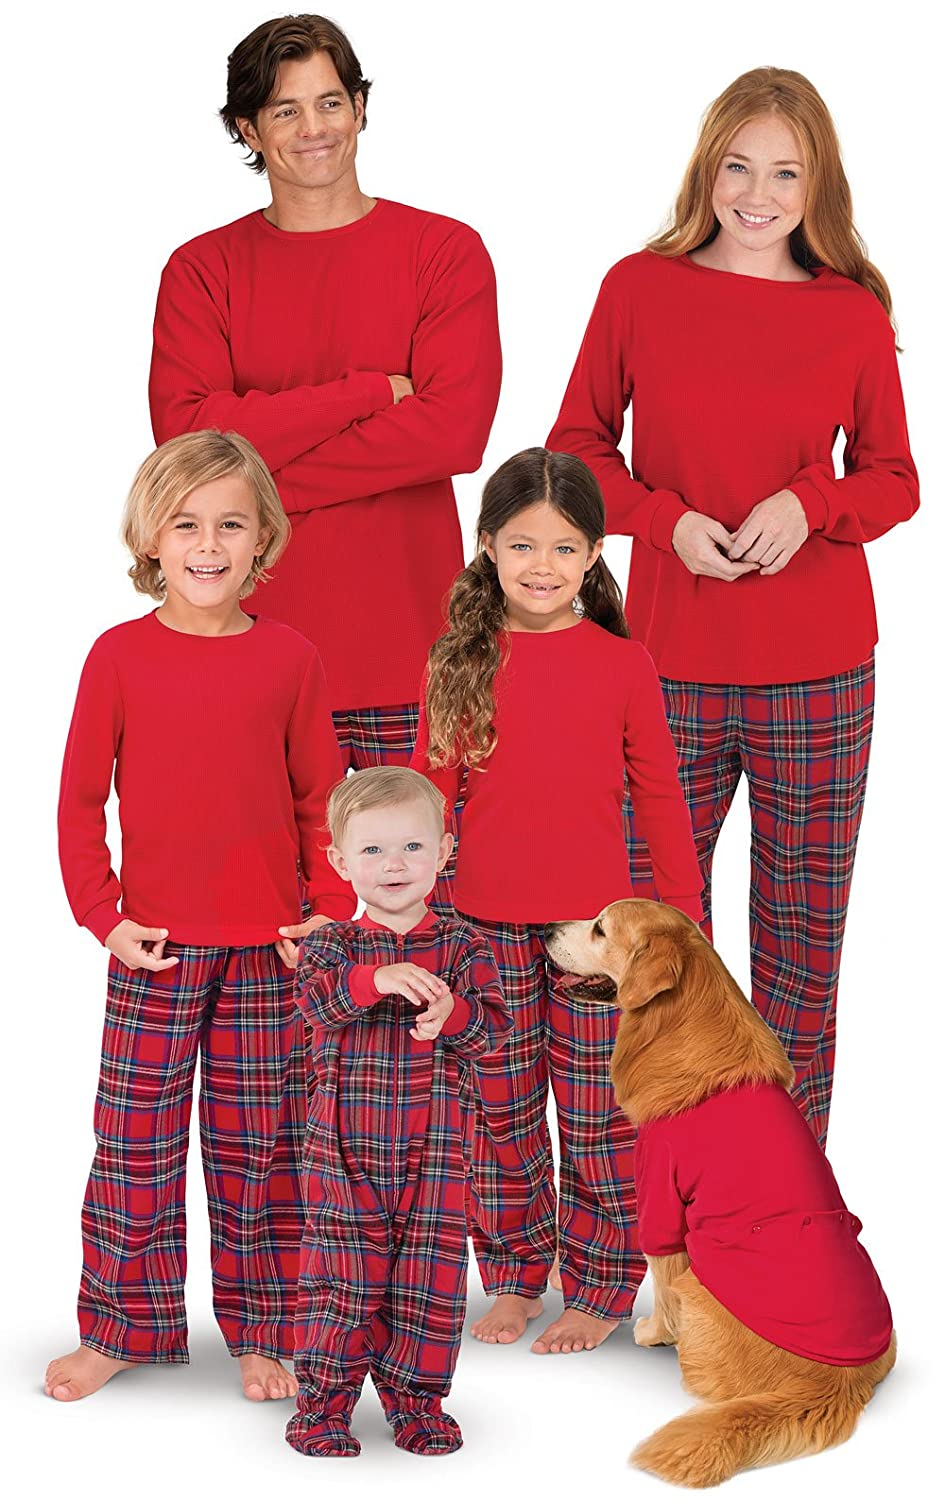 bfb49c2544 Amazon.com  PajamaGram Family Christmas Pajamas Set - Cotton Flannel ...